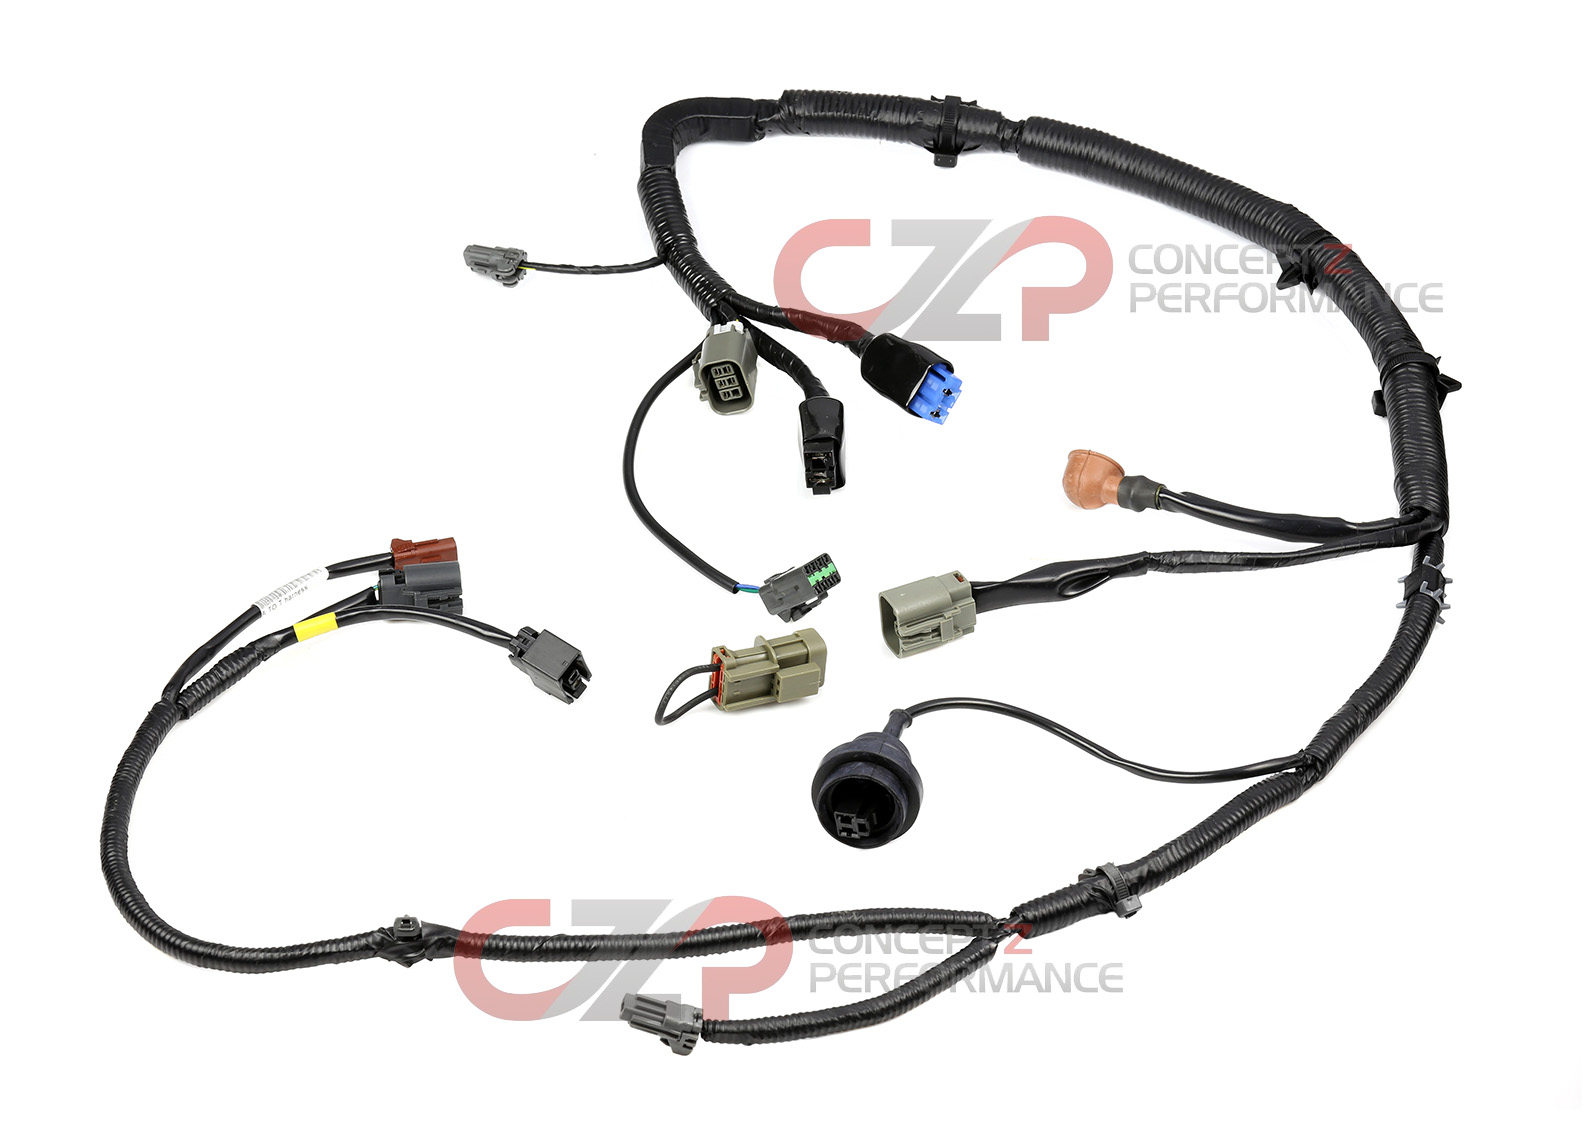 Z31 Alternator Wiring Diagram Nissan Z32 Free For You Specialties To Transmission Harness Automatic At Rh Conceptzperformance Com Z30 Z34